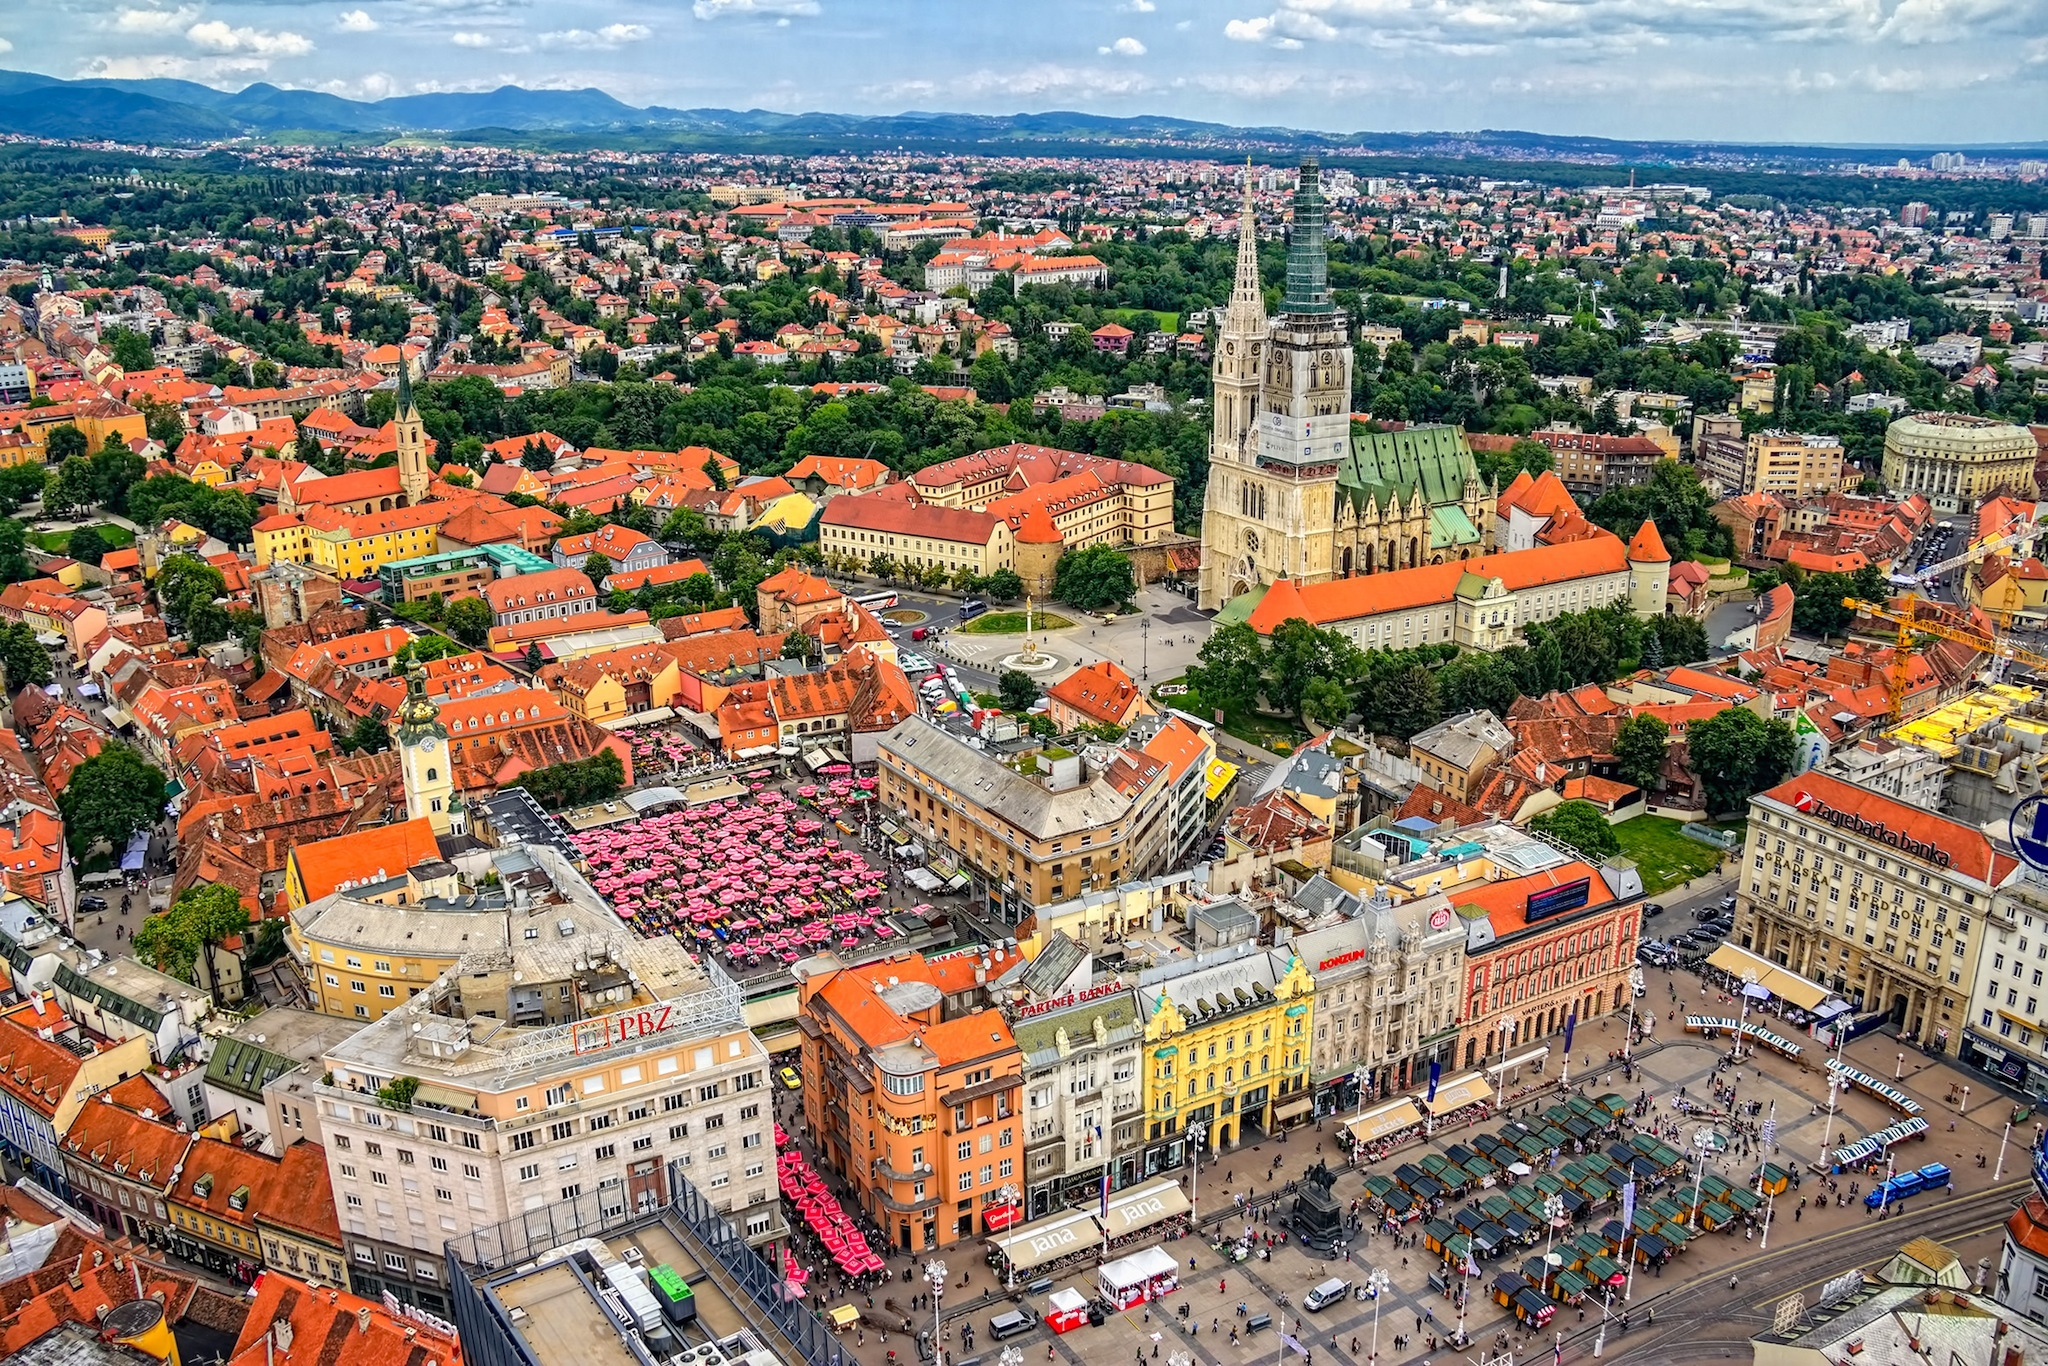 6 things you can do in Zagreb that you can't do in London